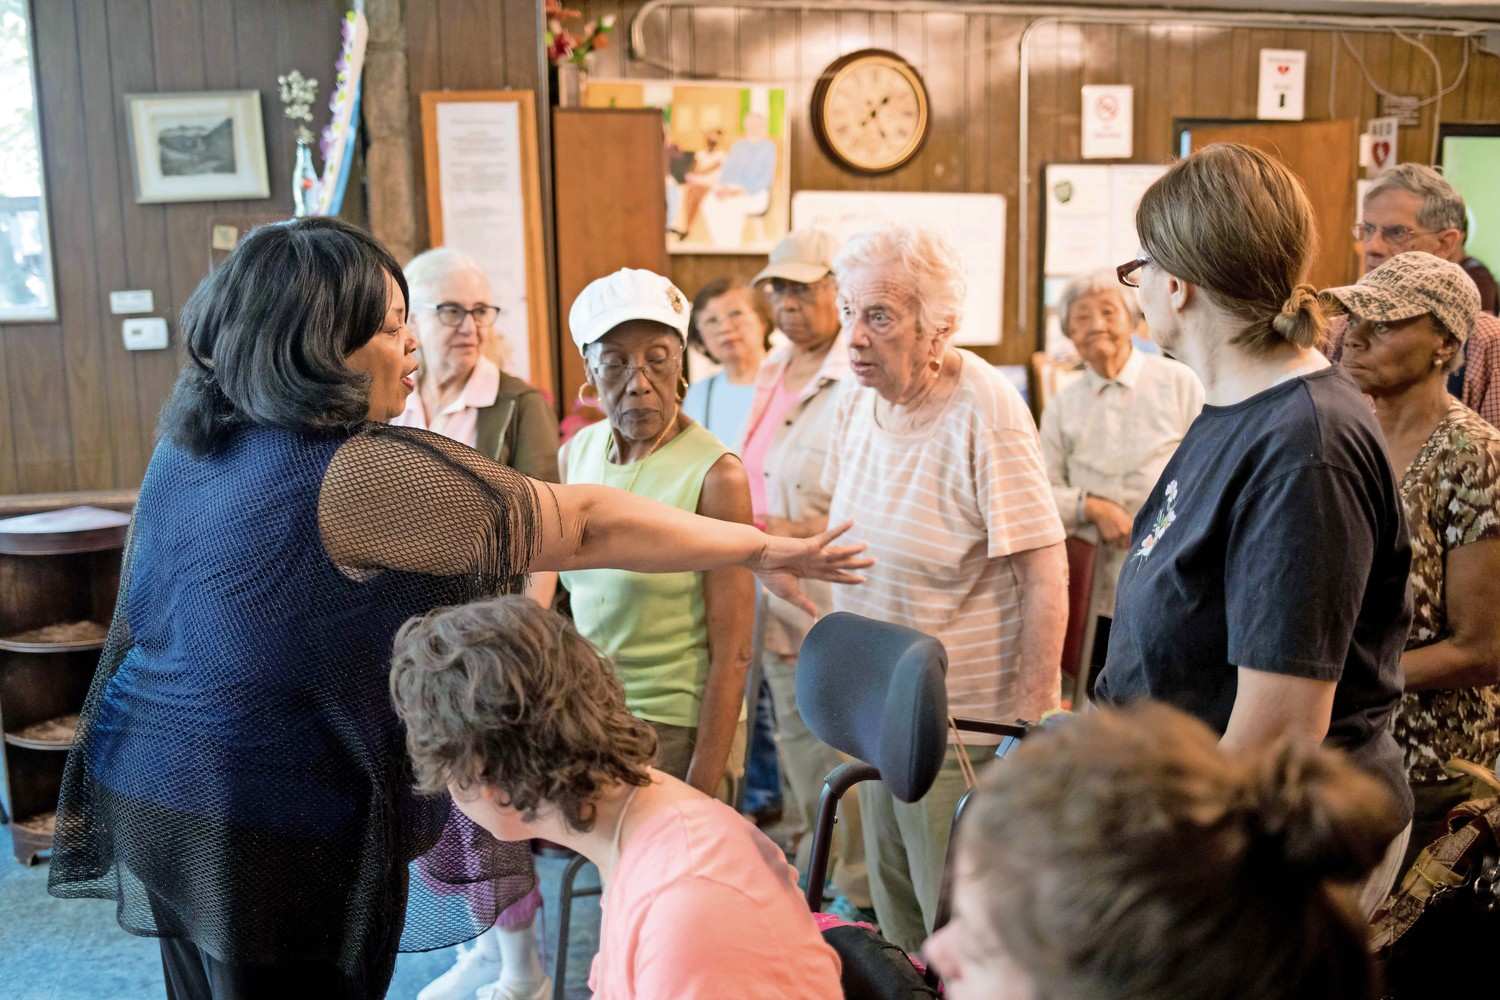 Cheryl Warfield directs her students where to stand when they sing. Warfield has been teaching senior citizens at the JASA Van Cortlandt Senior Center how to sing, and will lead them in a performance on Independence Day.